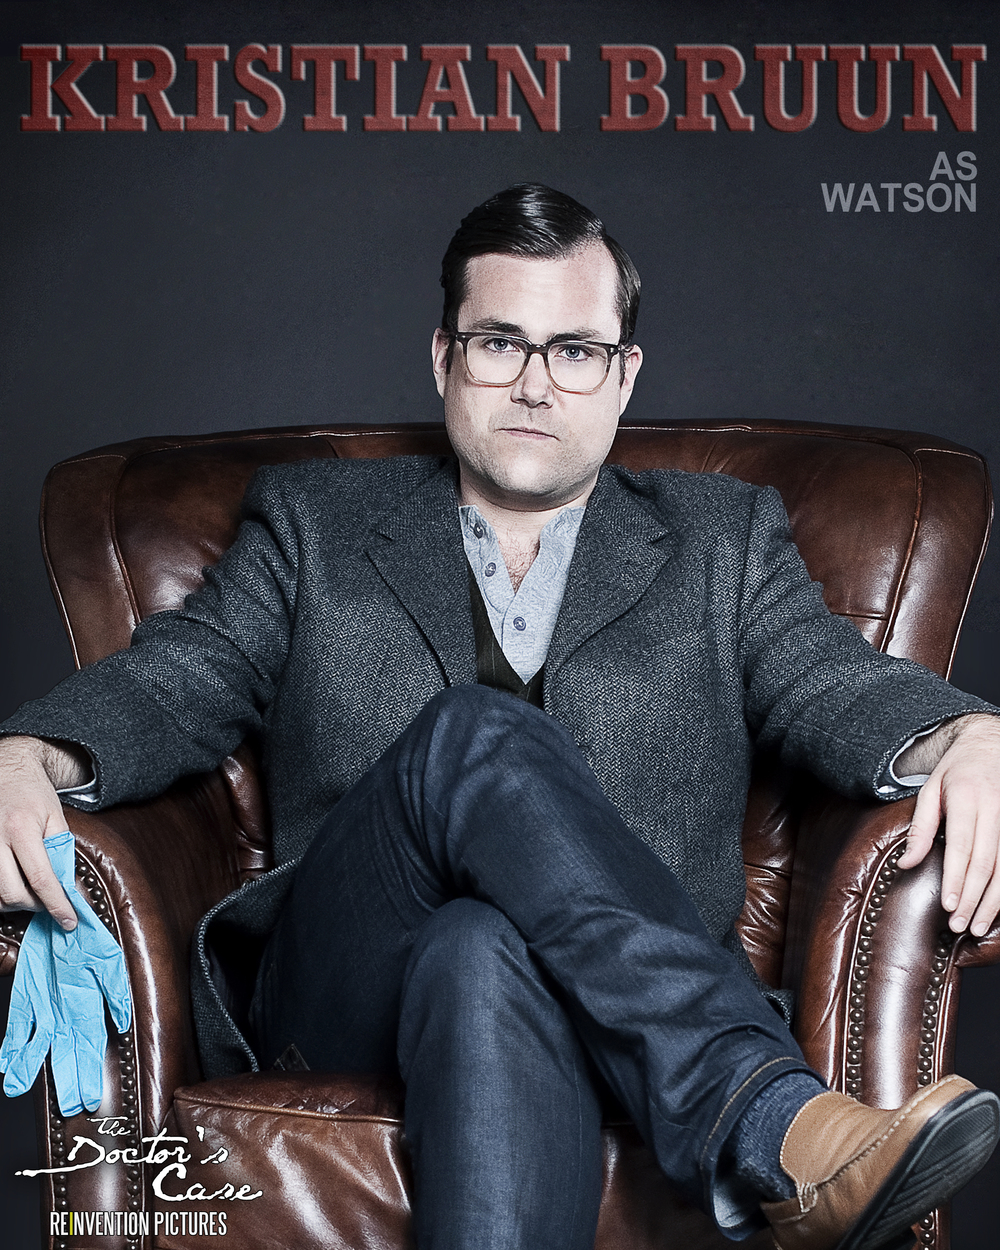 The Doctor's Case - Character Poster - Watson